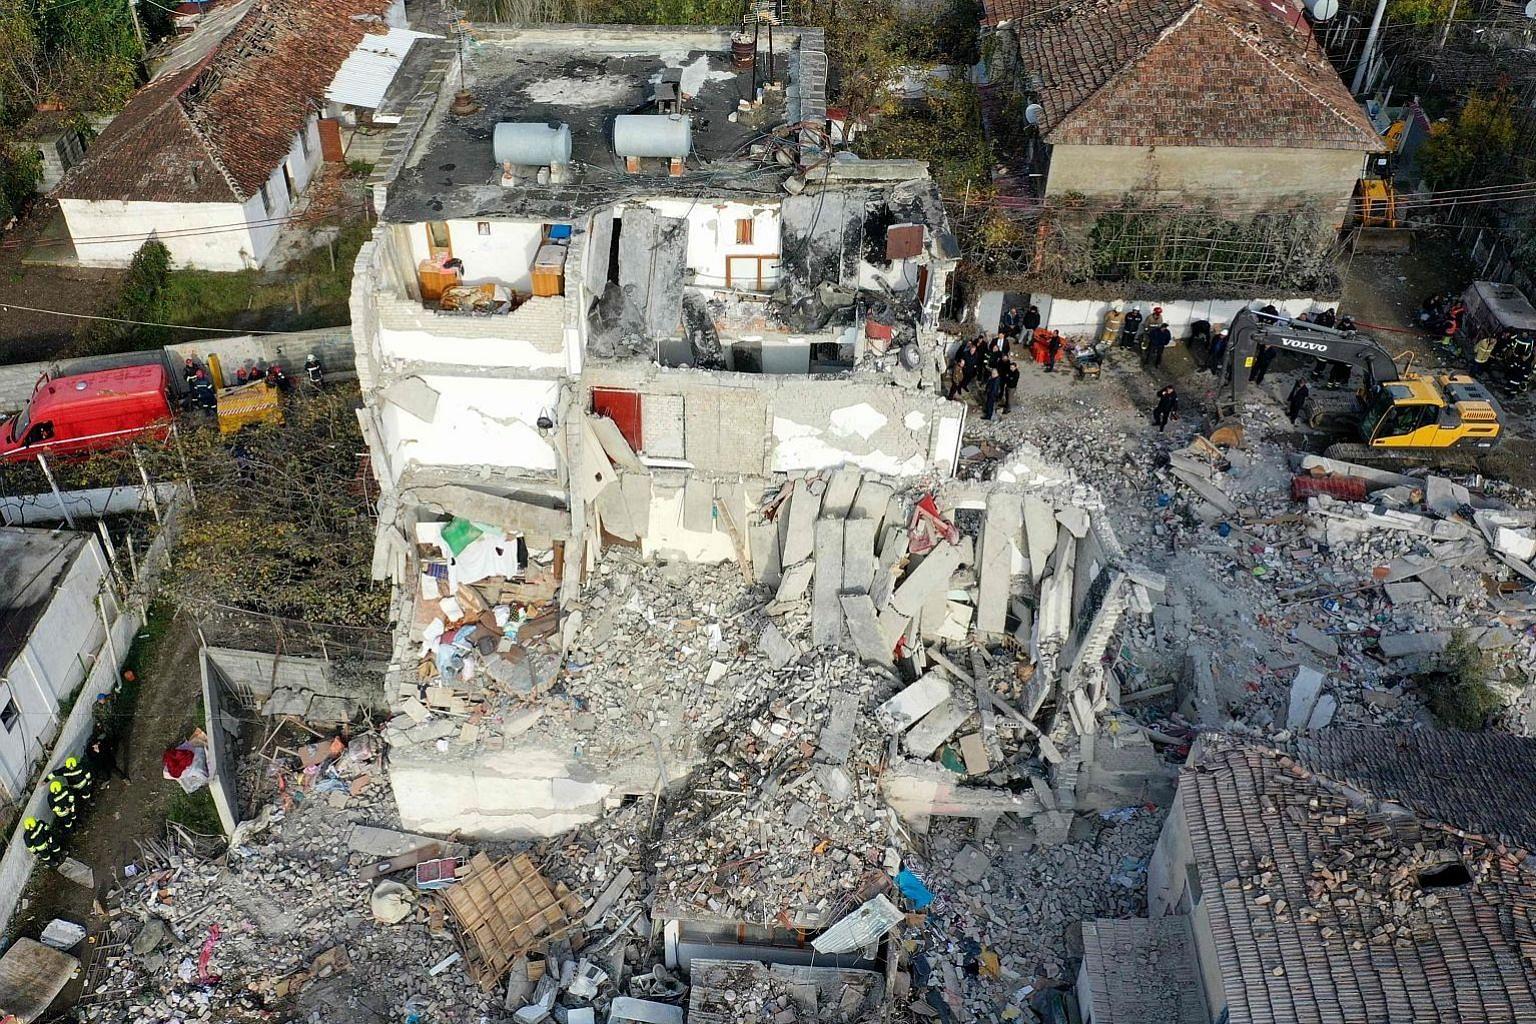 Emergency workers on the site of a collapsed building in Thumane, north-west of the capital Tirana, after an earthquake hit Albania on Tuesday. The disaster killed at least 26 people and injured more than 650. Rescue teams and other disaster experts